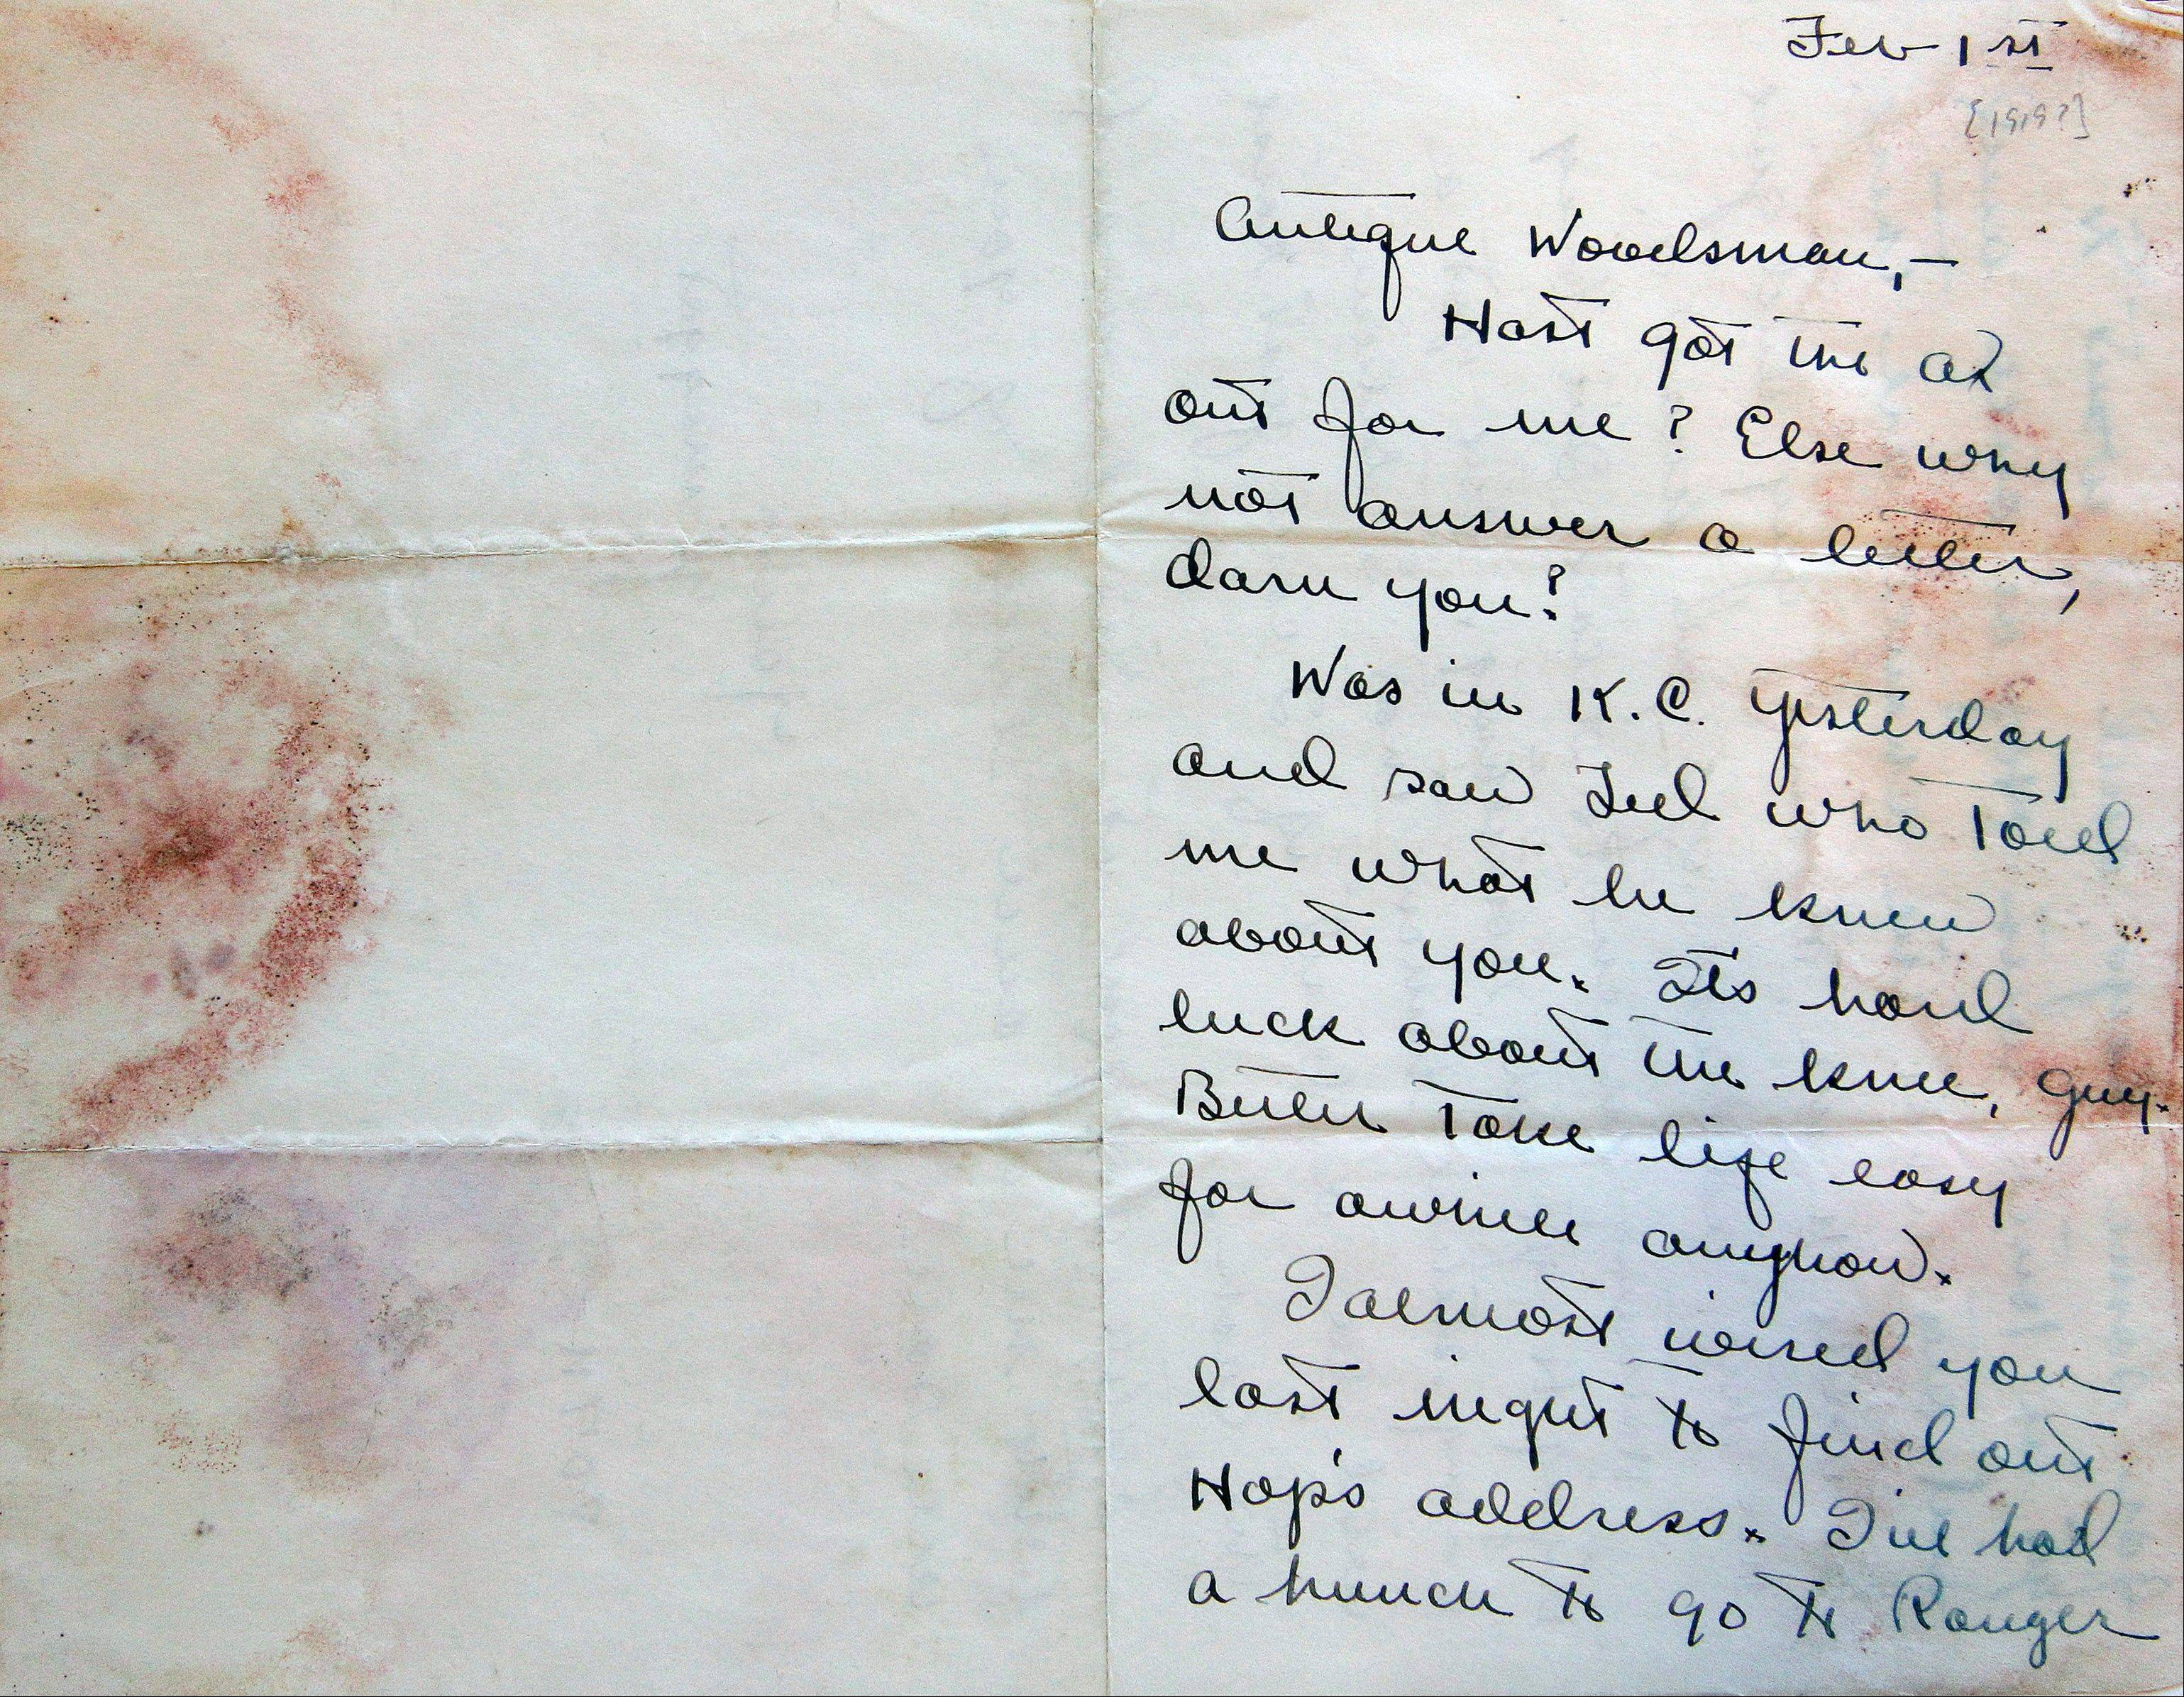 A letter sent to Ernest Hemingway from boyhood friend Carl Edgar around 1919, a part of the Hemingway collection at the John F. Kennedy Library and Museum, in Boston.